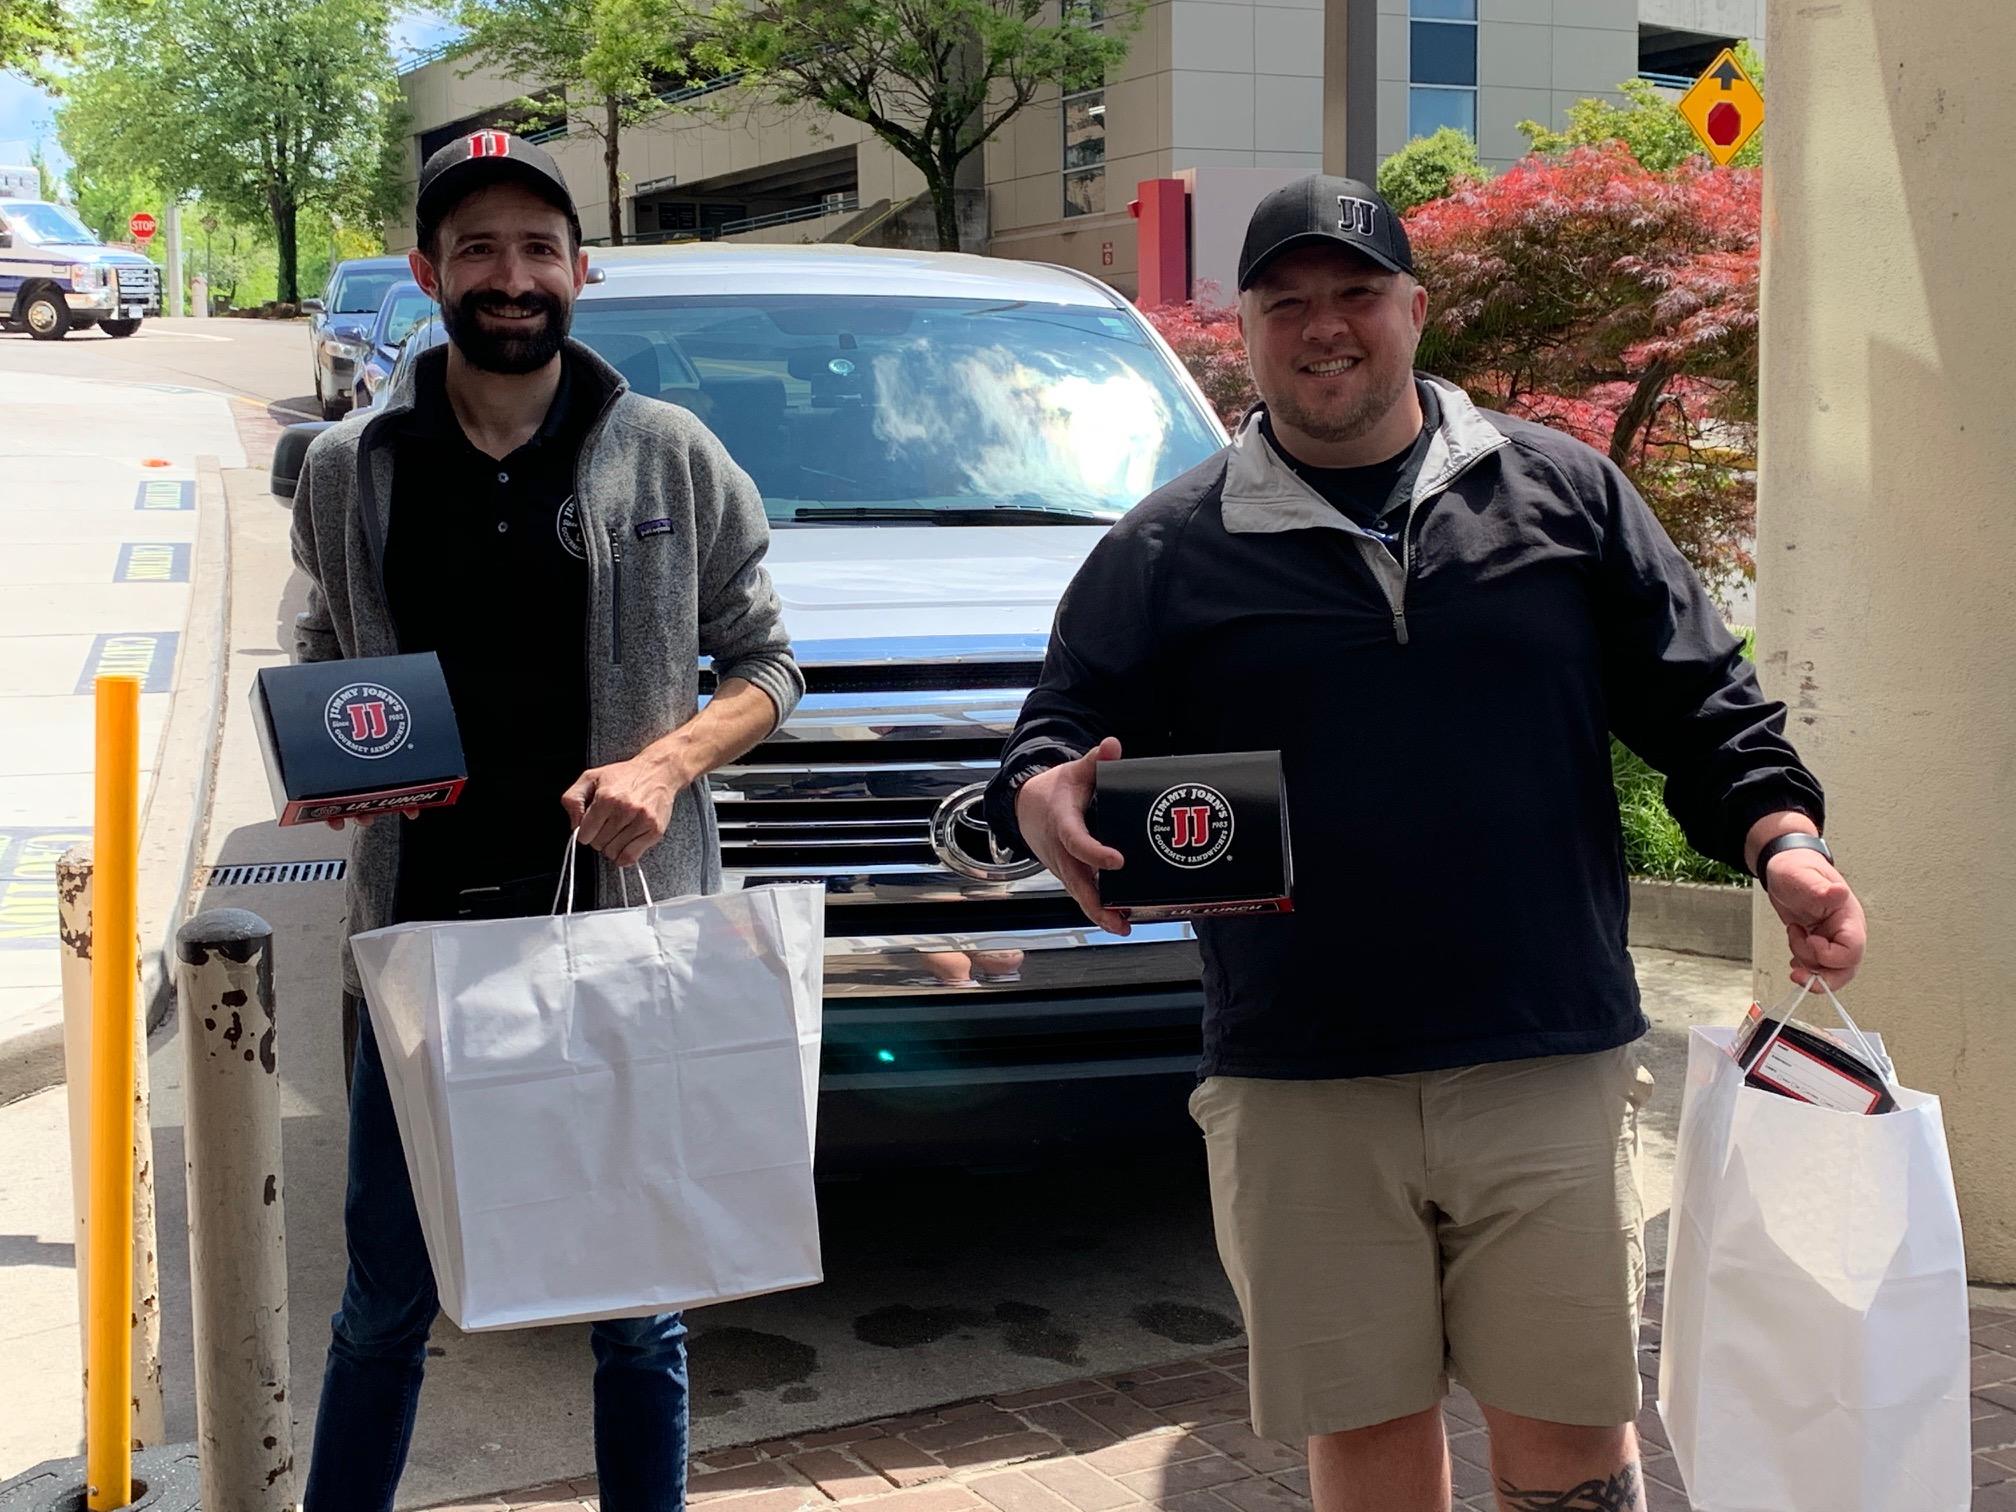 Jimmy John's delivered 600 sandwiches to Fort Sanders Regional, each with a handwritten note. We can't thank you enough for your generosity and words of encouragement.